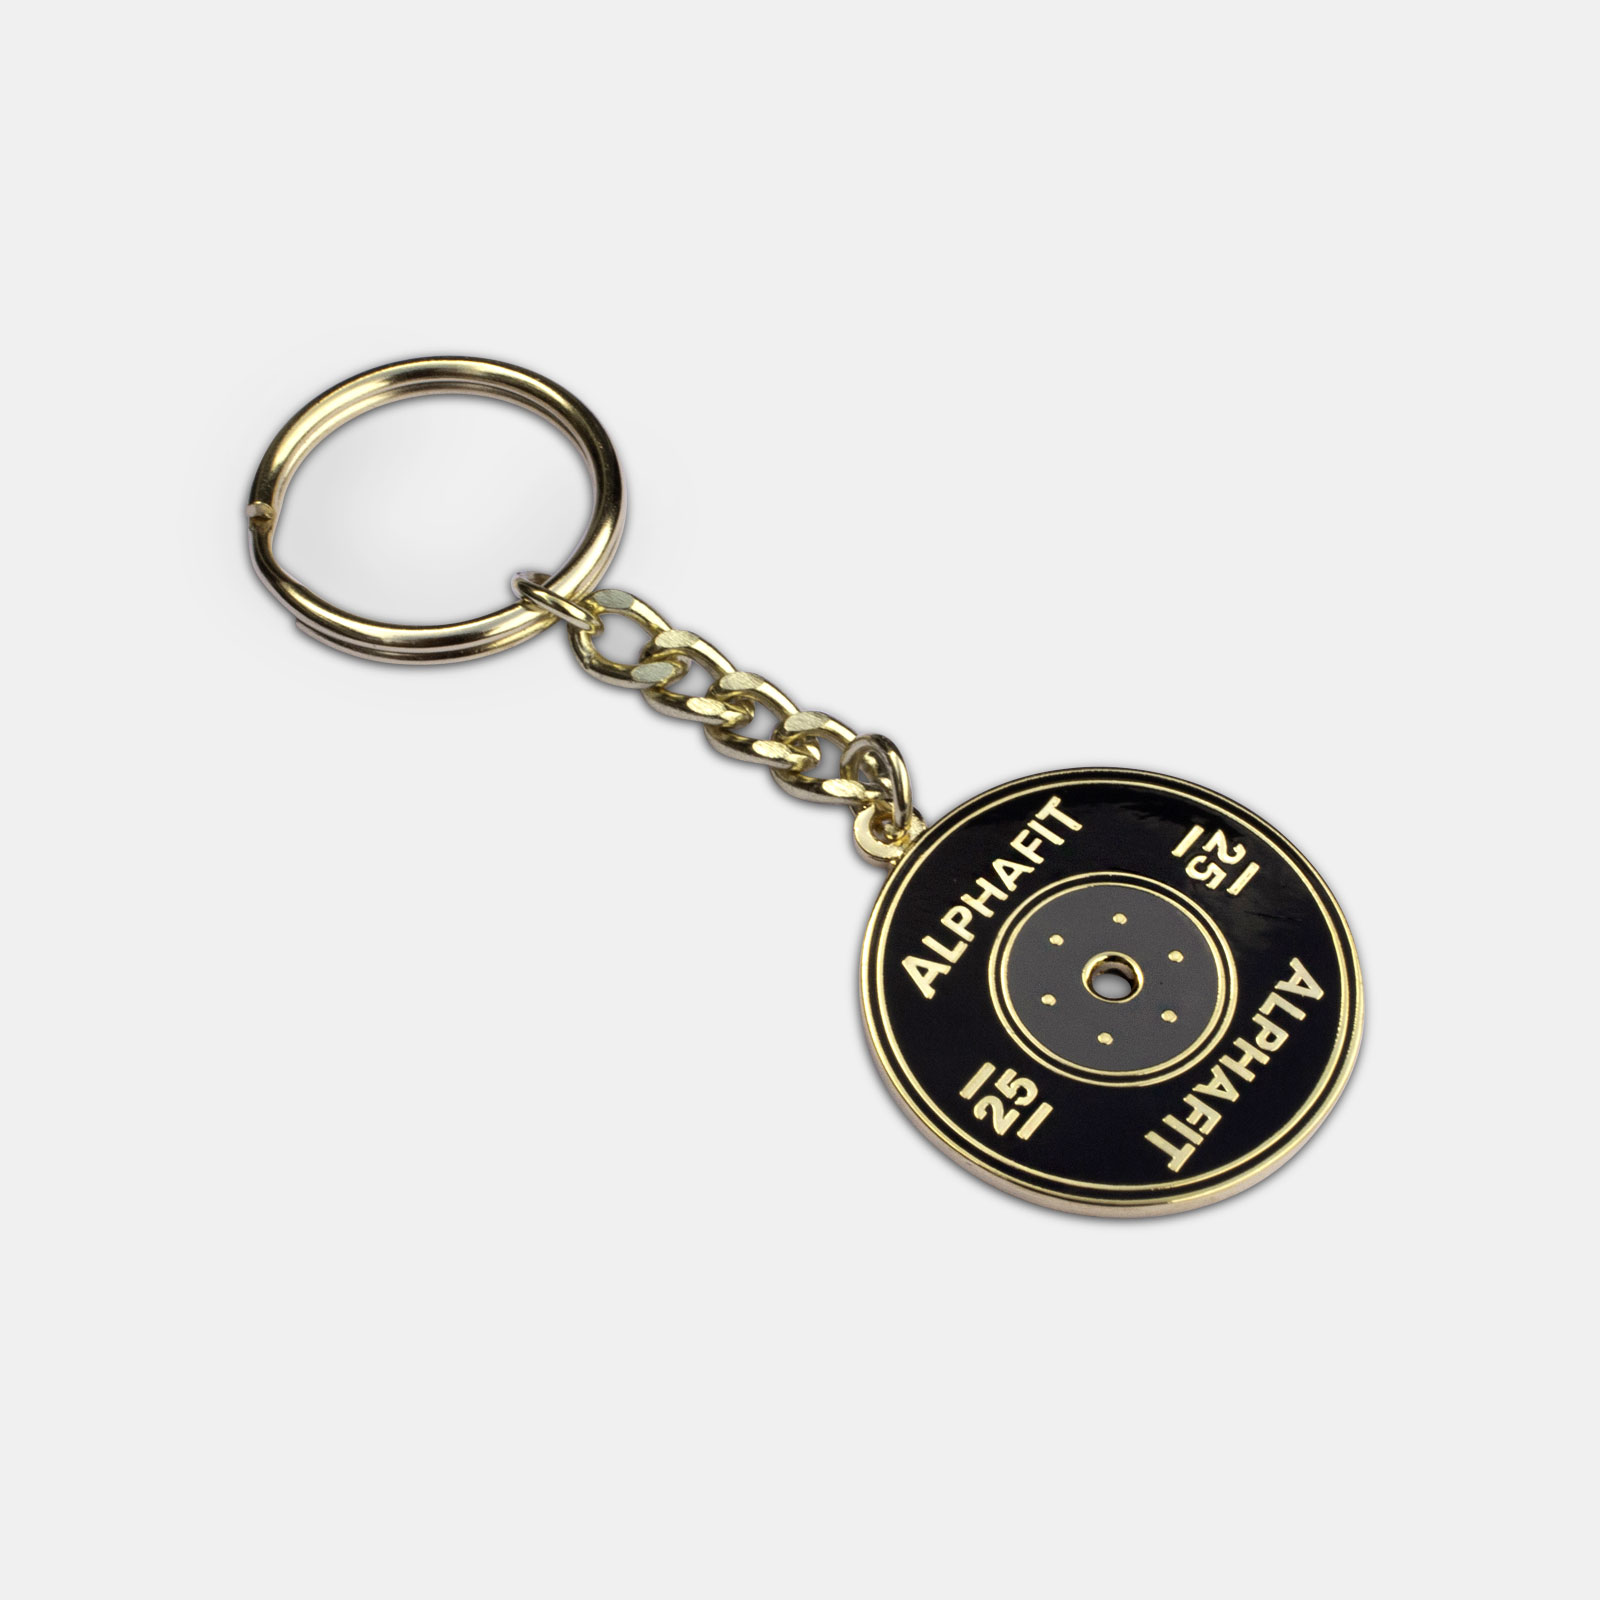 Competition Bumper Keyring - Black/Gold image